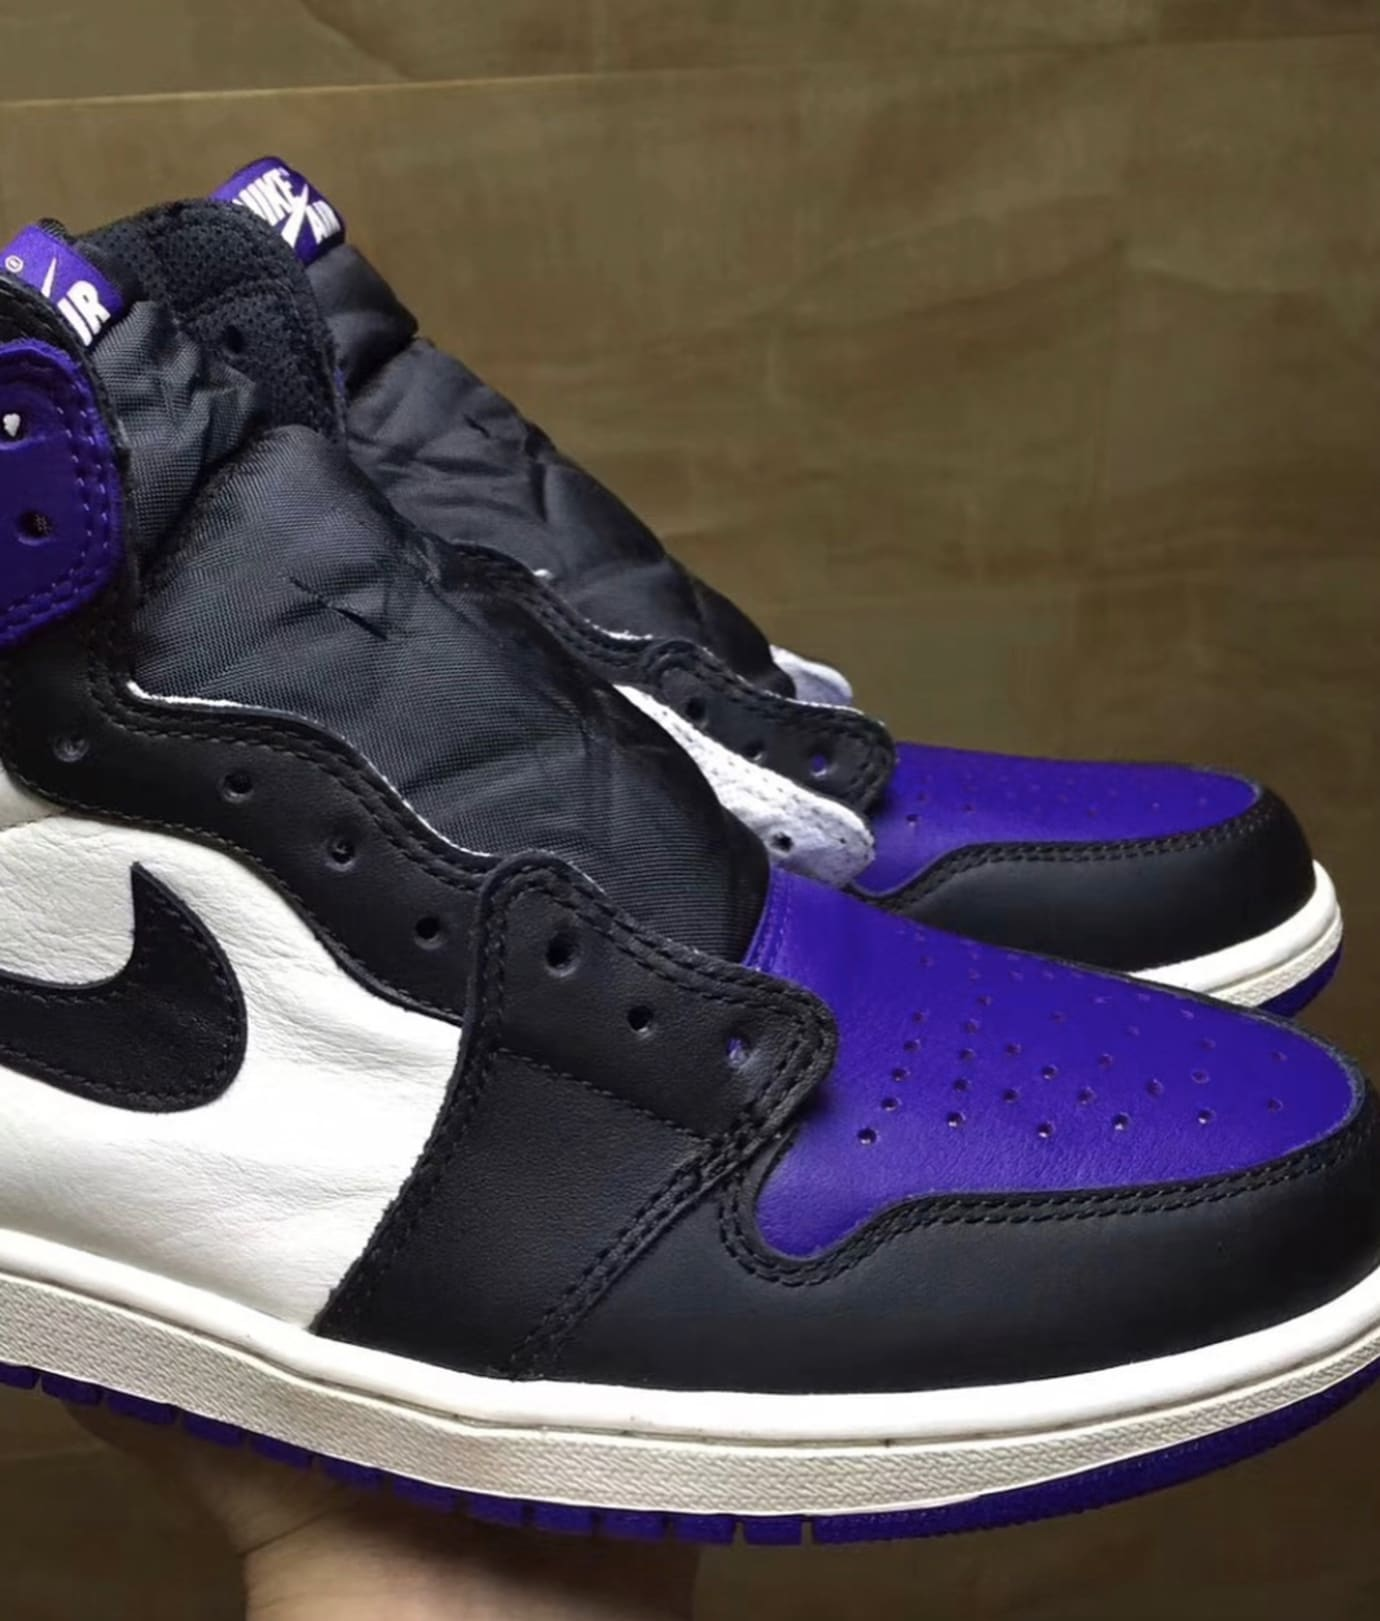 Air Jordan 1 'Court Purple' 3